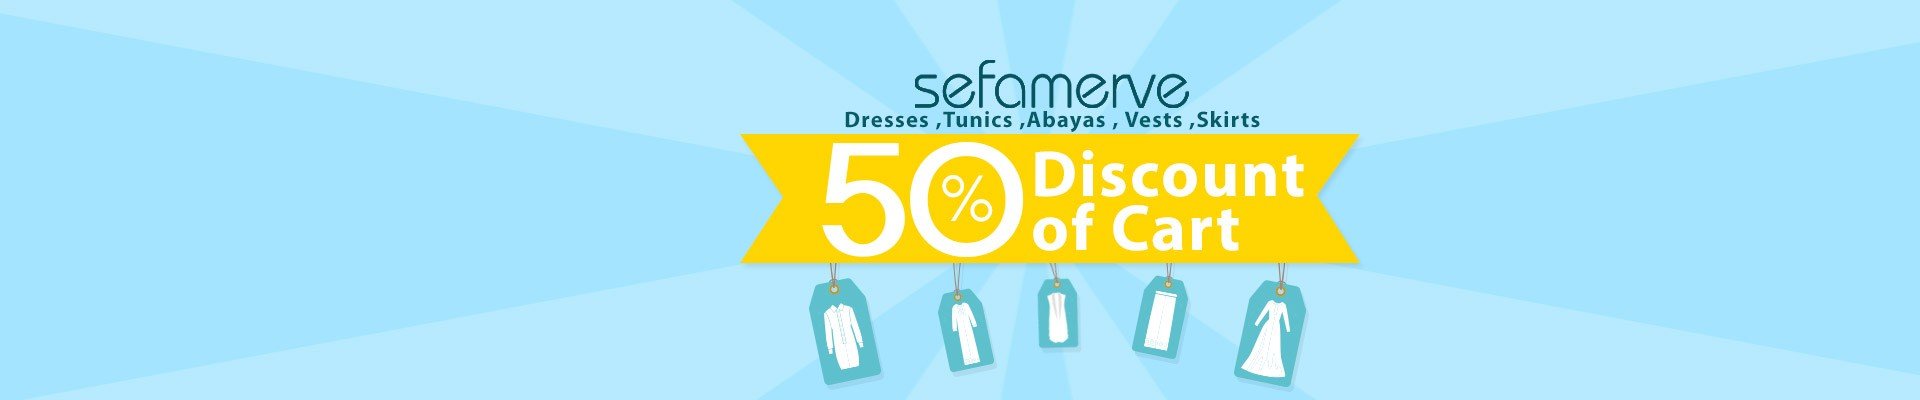 .%50 Discount of Cart